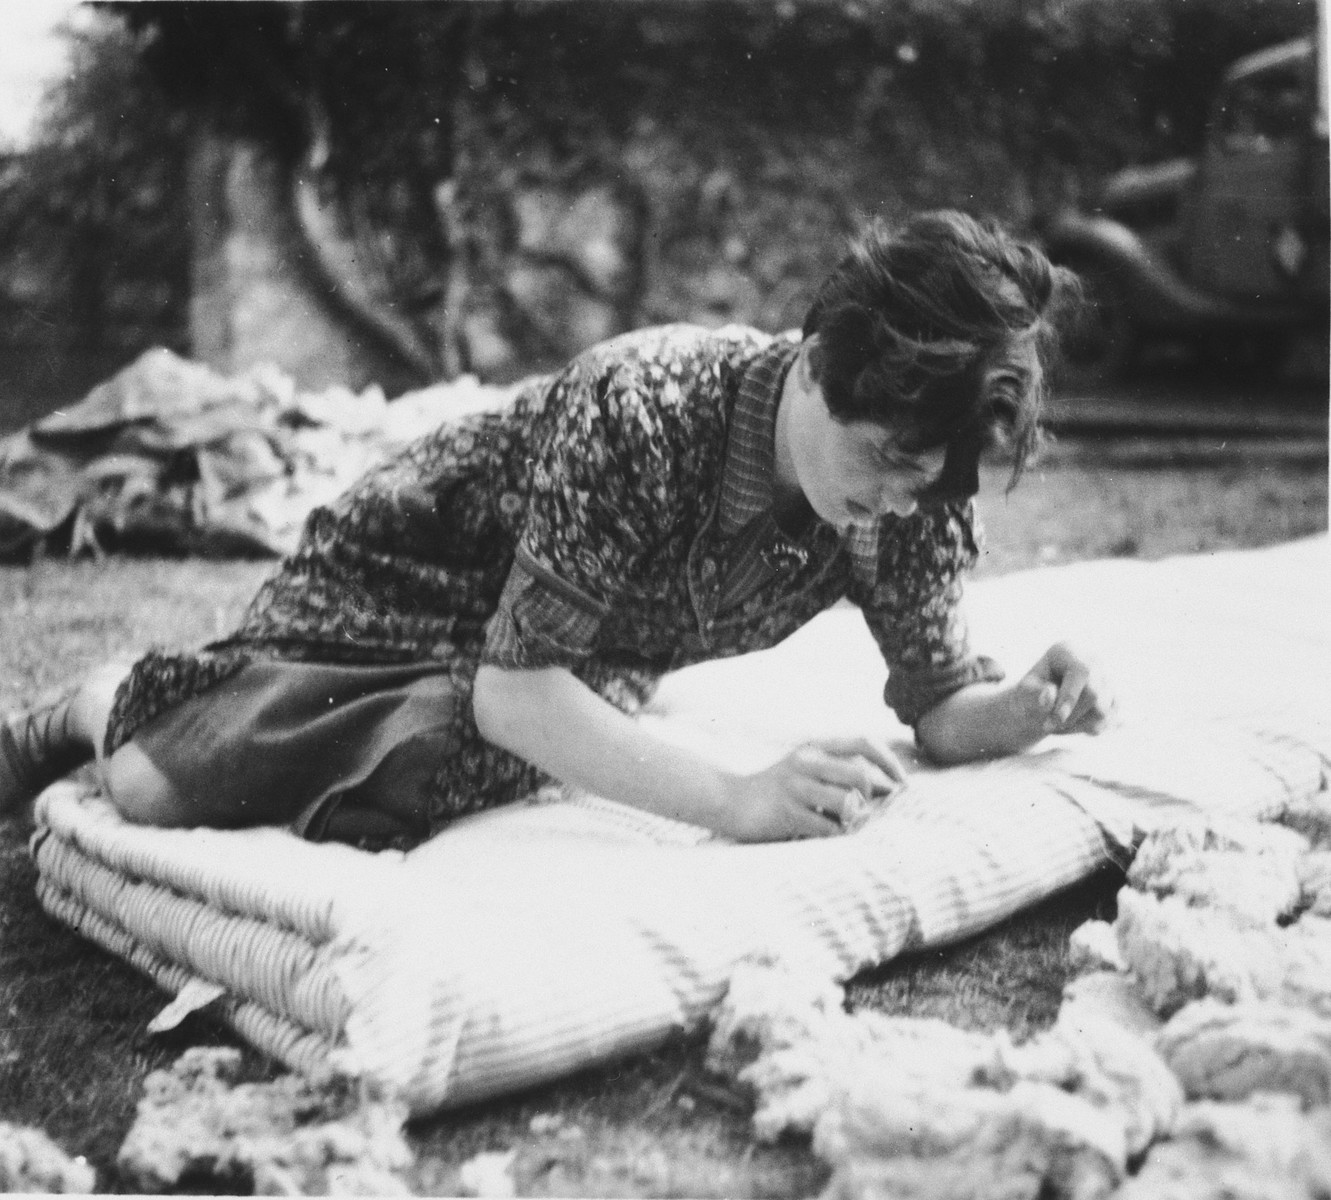 Ruth Herz darns a feather mattress in the Chateau La Hille children's home.